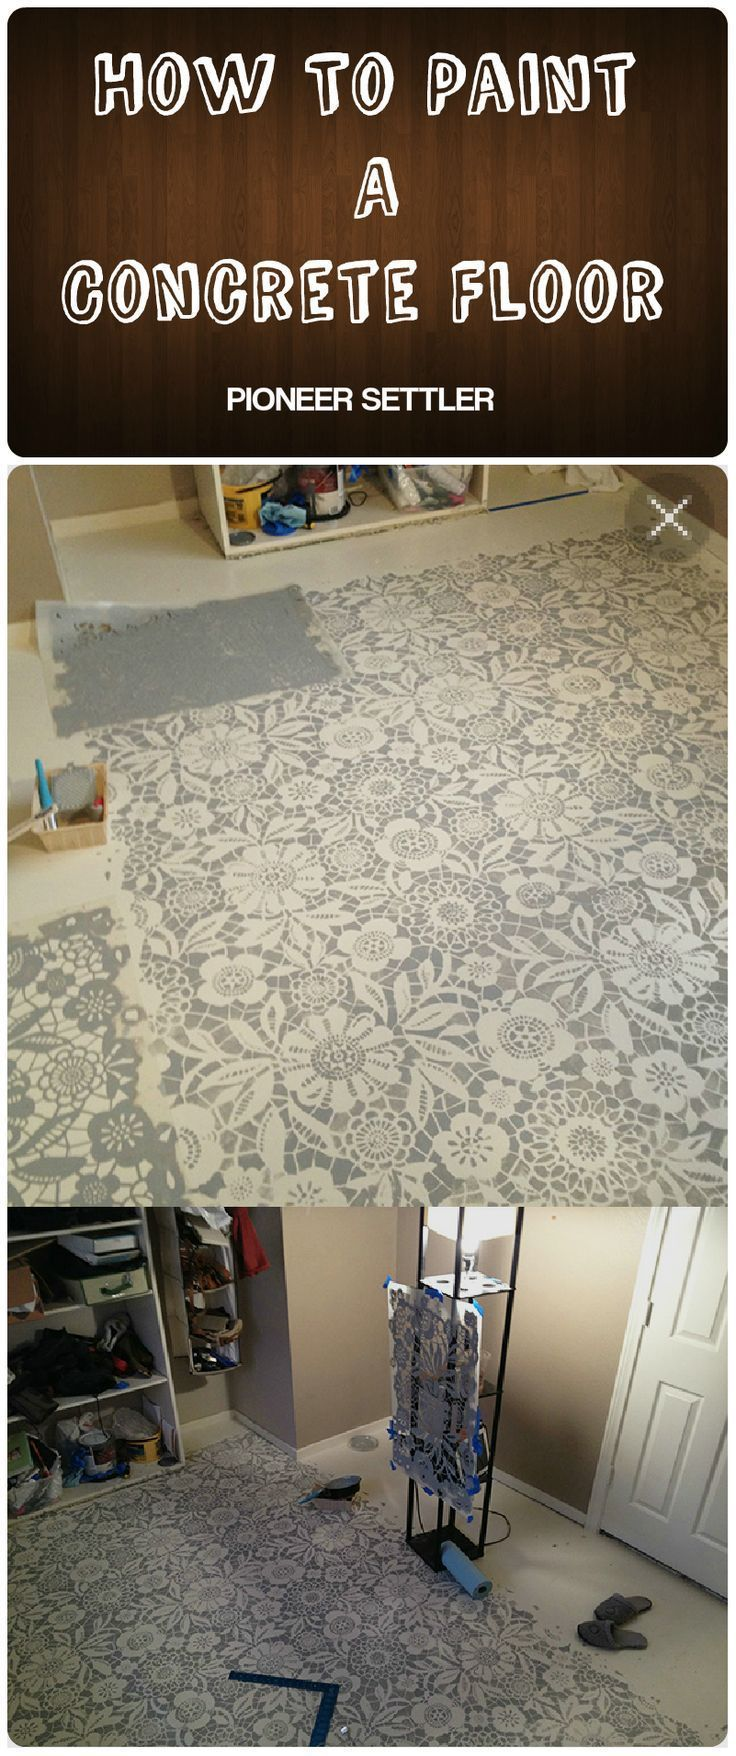 How To Paint A Concrete Floor   Seal and improve the look and performance of the floor by this step-by-step tutorial + video tutorial.   Best Homesteading Tips, DIY Projects and Homemade Recipes #pioneersettler   pioneersettler.com